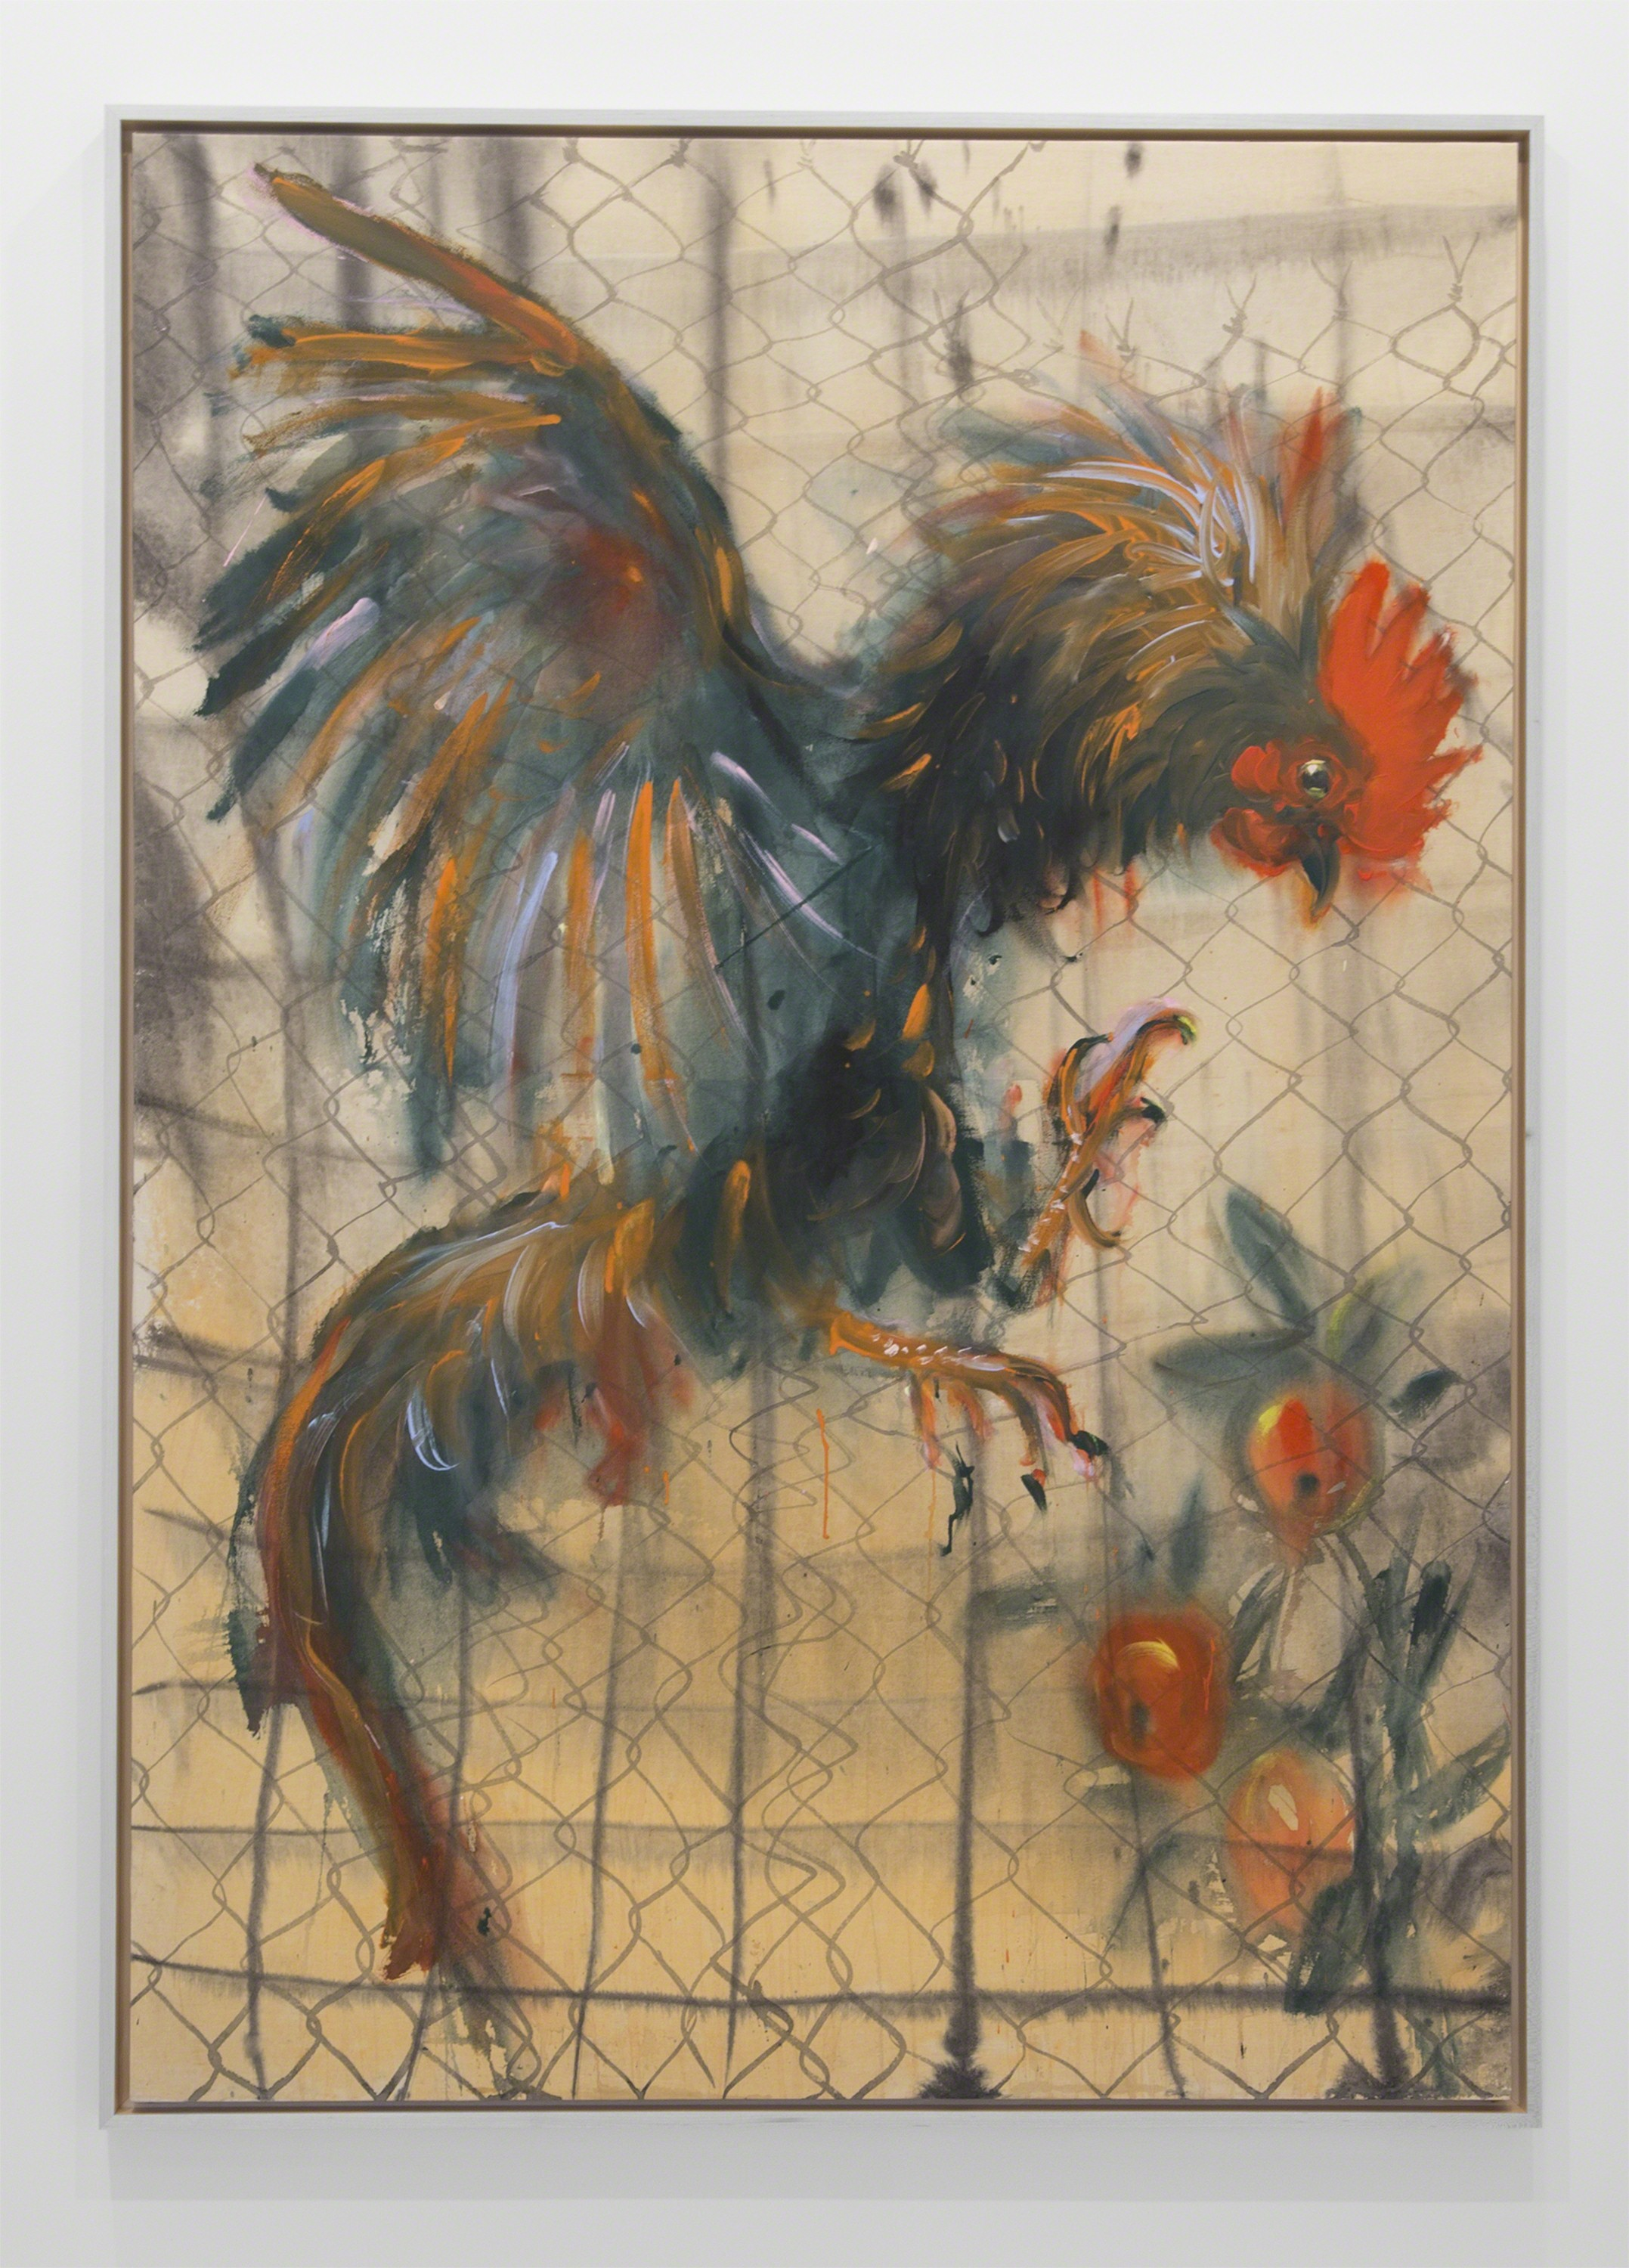 , 'Rooster, apples and the fence,' 2016, Nathalie Karg Gallery